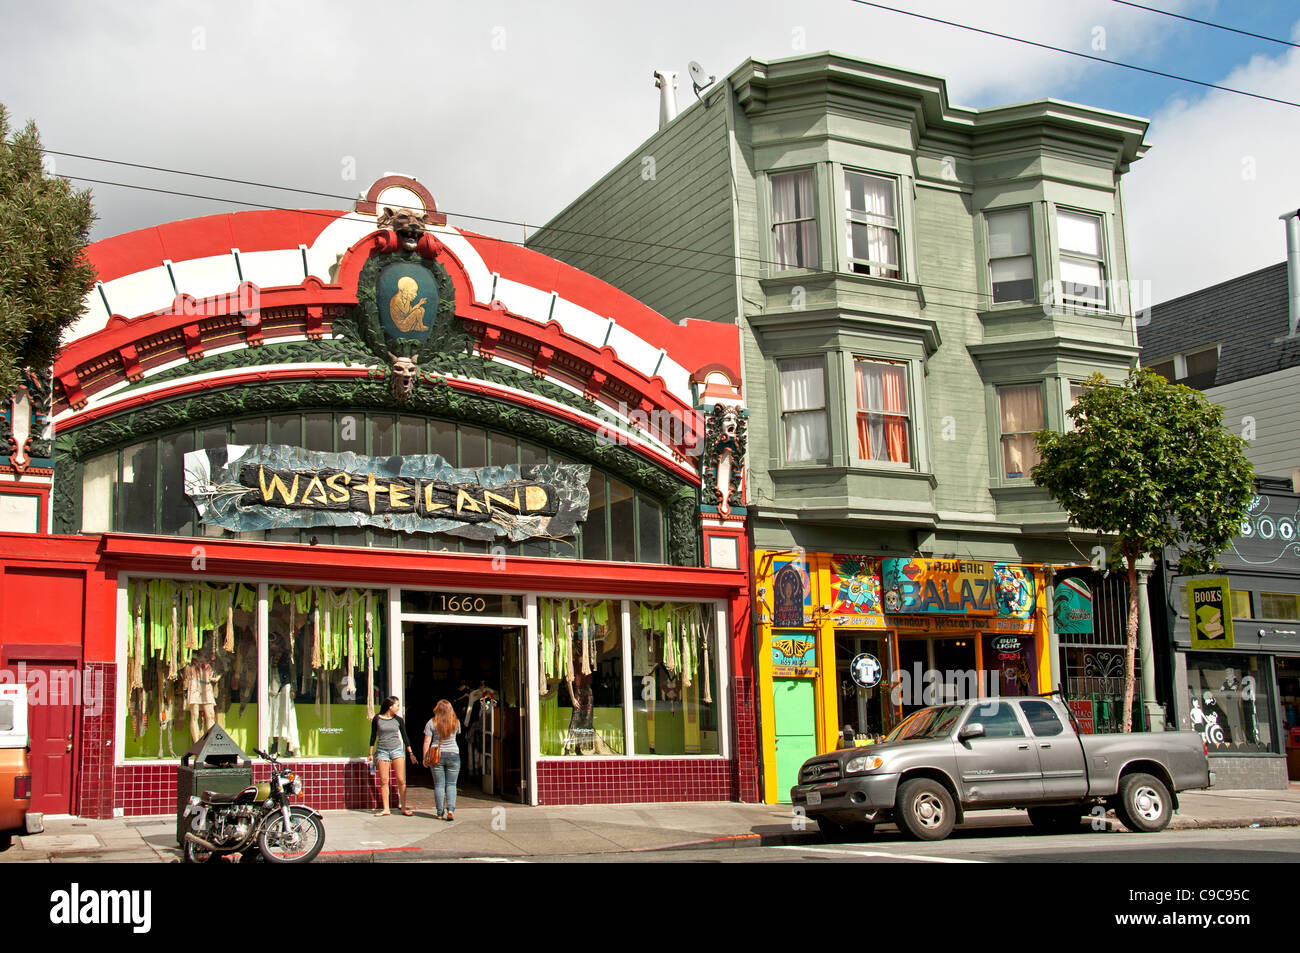 Wasteland San Francisco Haight Ashbury California USA United States - Stock Image